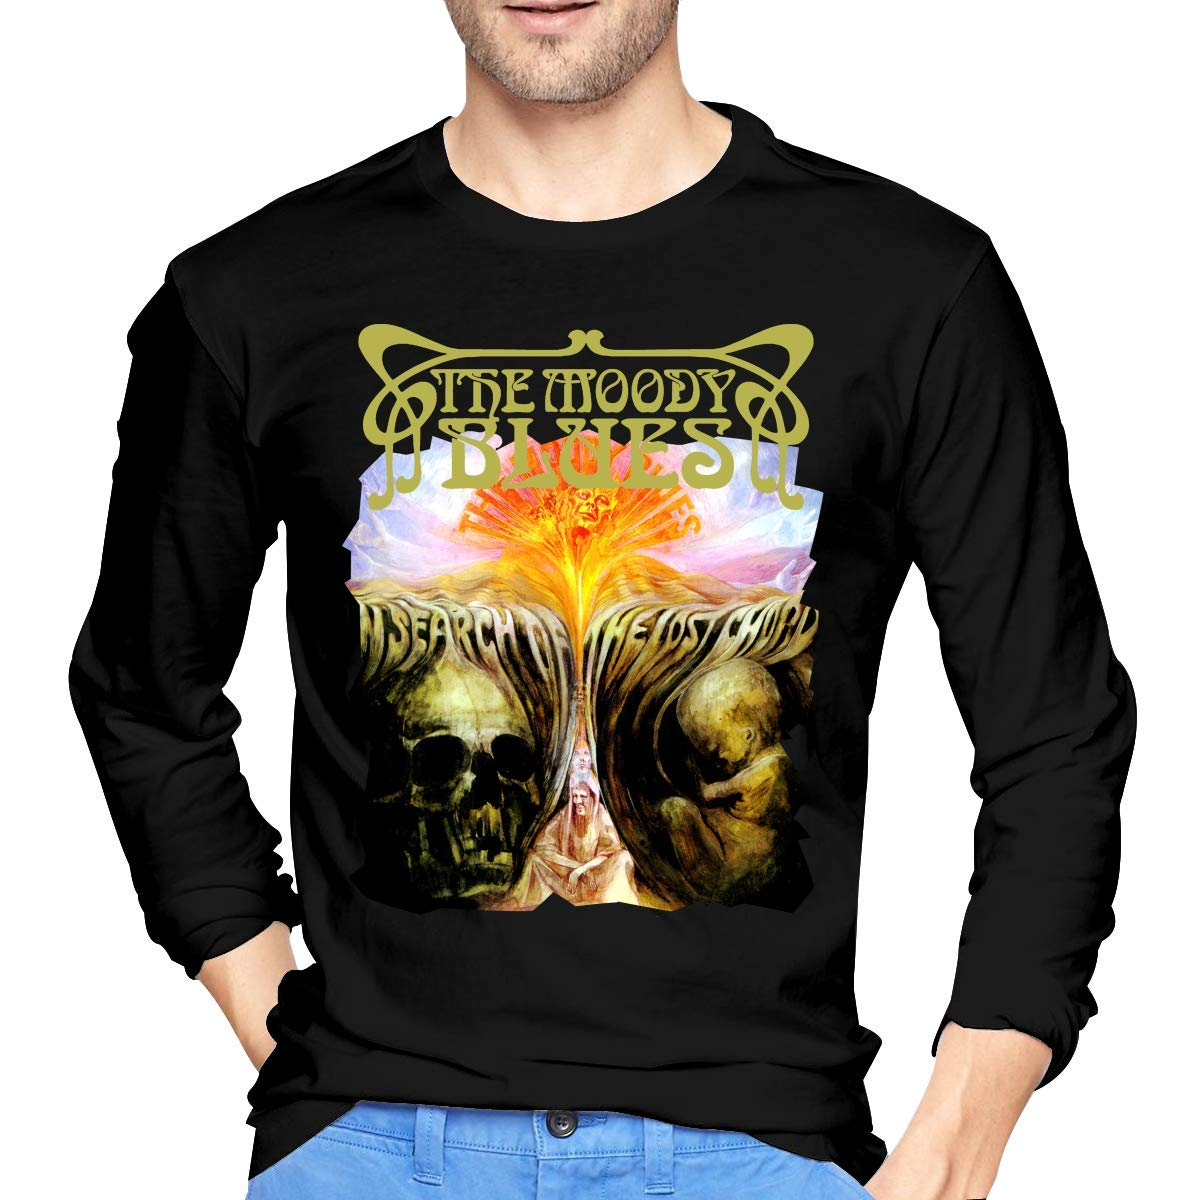 Fssatung S The Moody Blues In Search Of The Lost Chord T Shirt Black